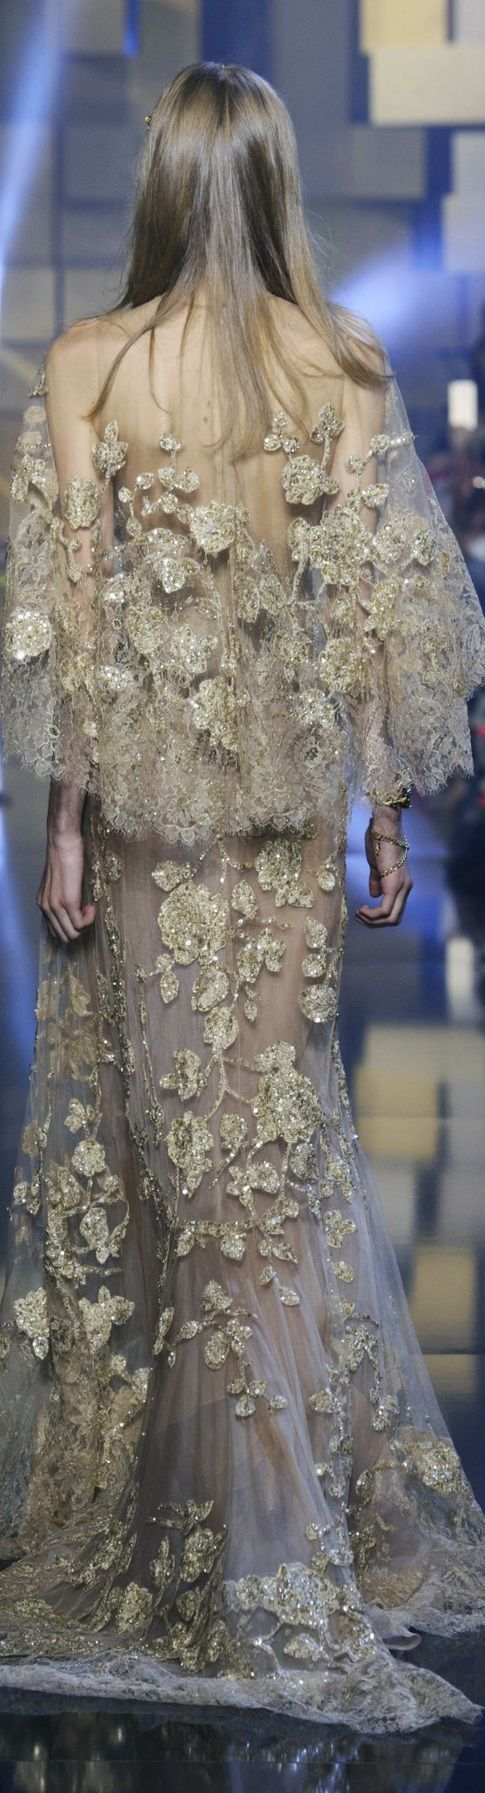 Elie saab FW 2015 couture                                                                                                                                                      More